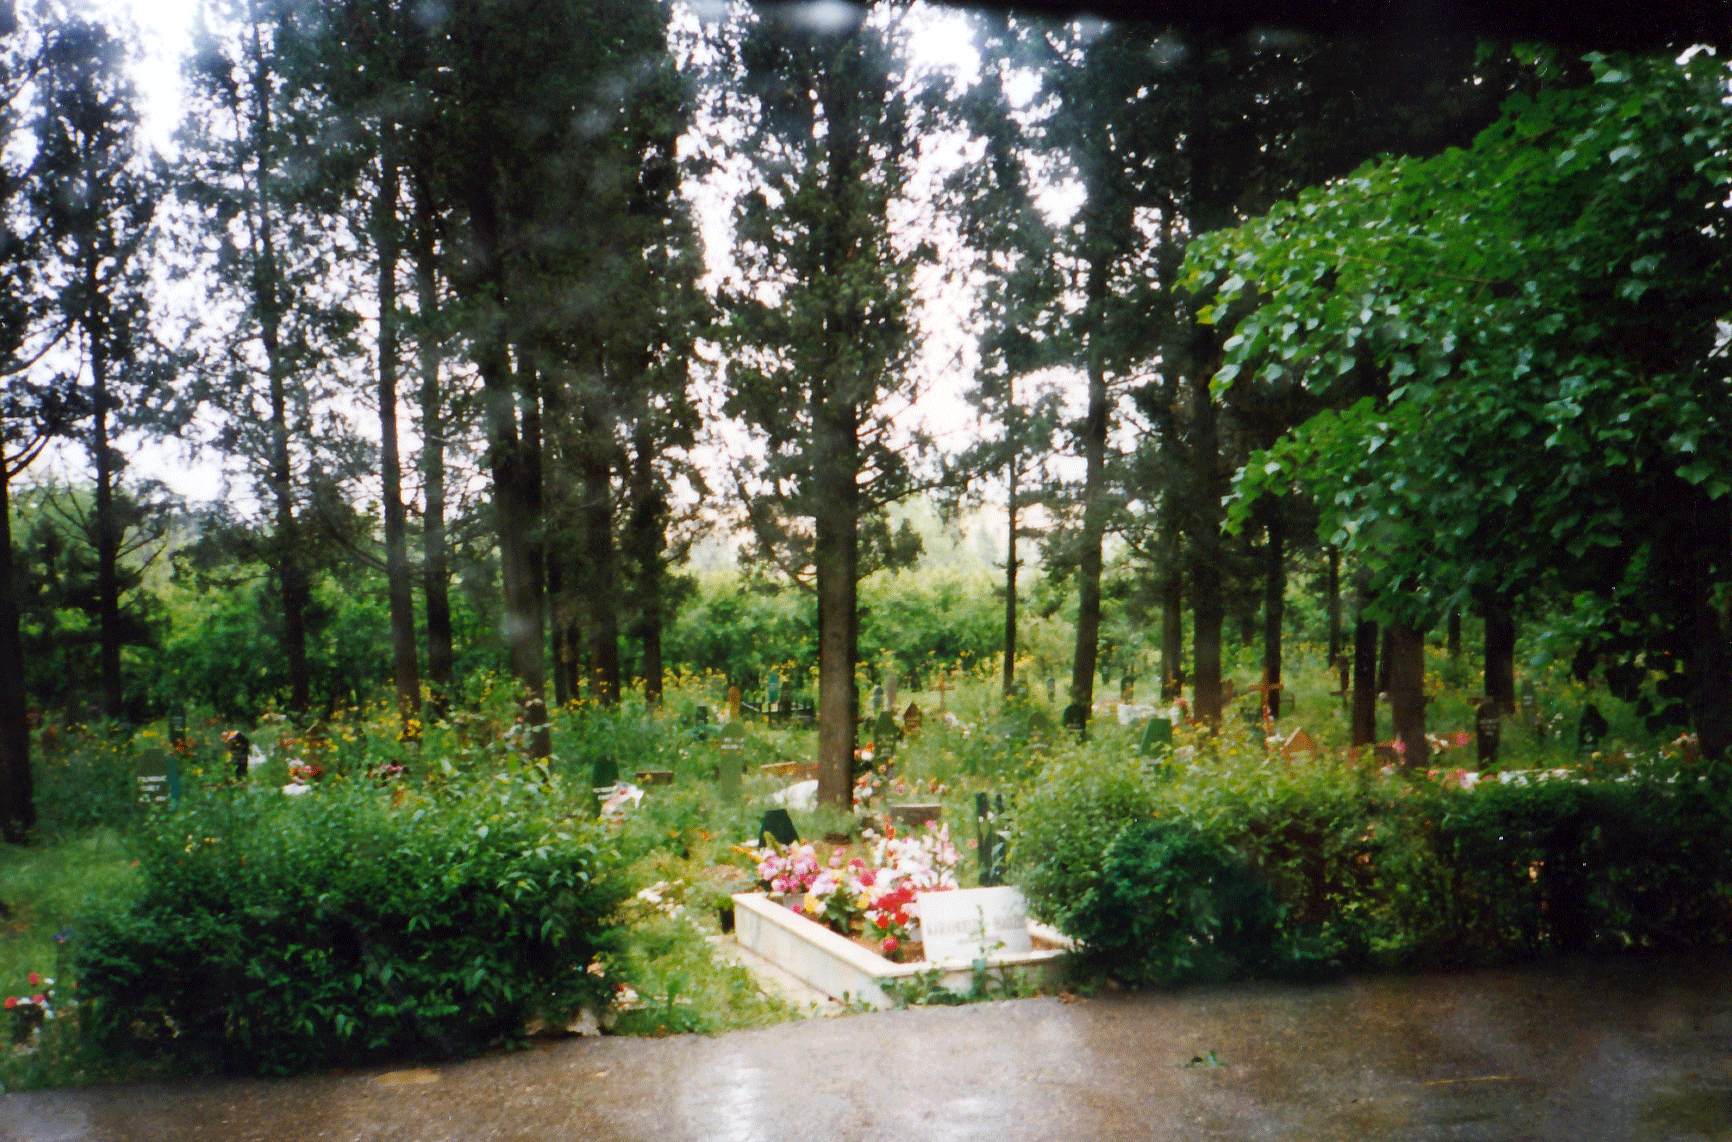 Parks became makeshift cemeteries during the war in Bosnia & Herzegovina